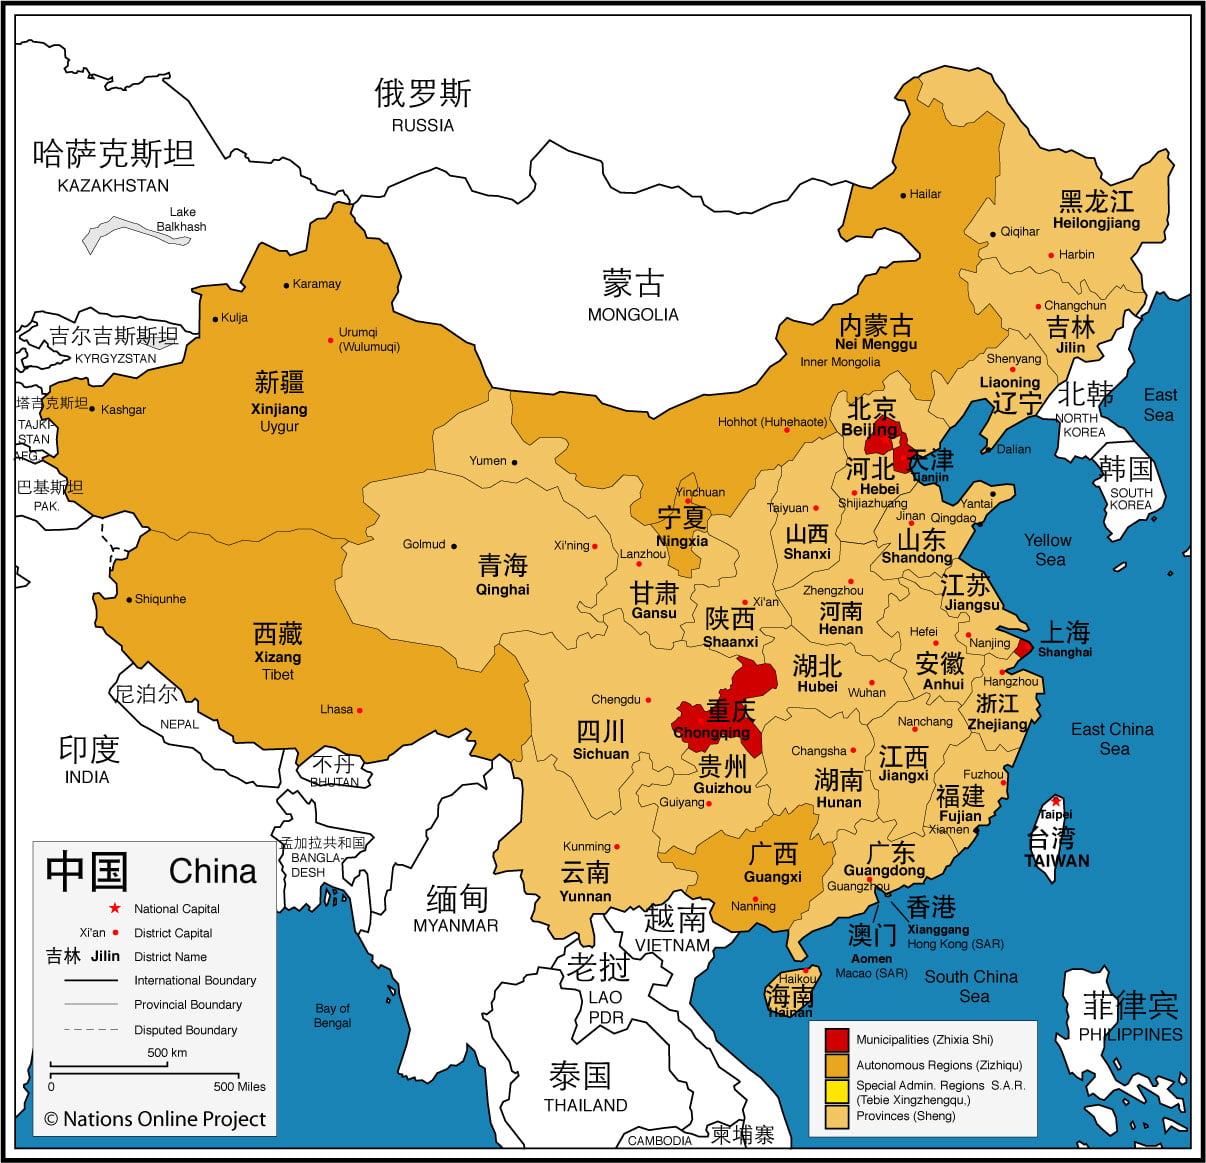 Best Historical Places To Live In The Us: Mapa Político De China